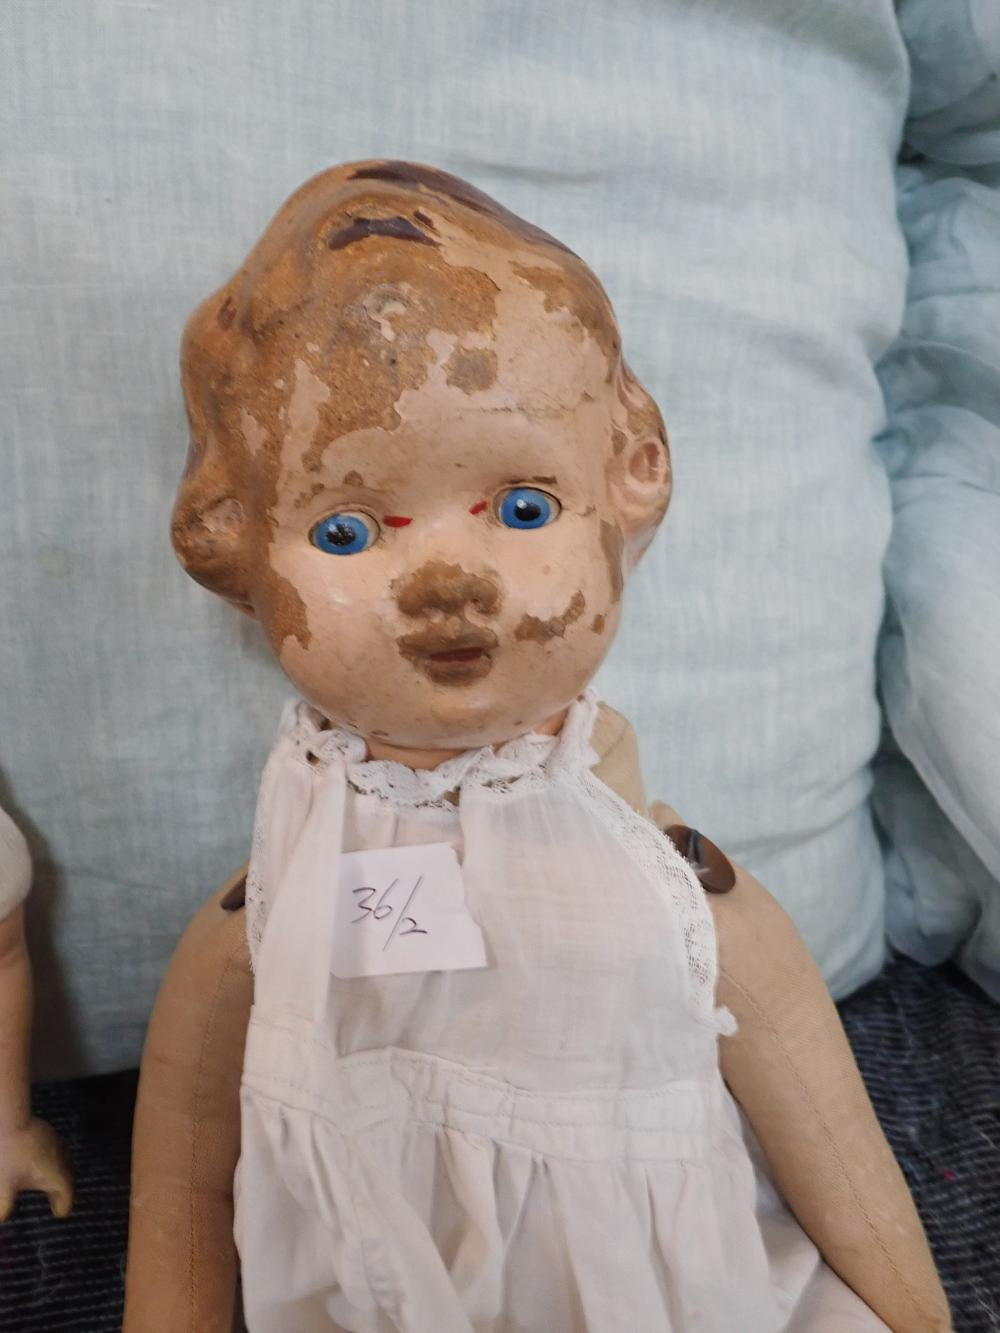 """2 DOLLS (1) 1931 HORSEMAN RELIABLE DOLL, MADE IN CANADA, COMPOSITION DOLL 24"""" HIGH, HEAD DETERIORATING, (2) COMPOSITION DOLL WITH SOFT BODY ARMS & LEGS - SPLIT DOWN HEAD"""